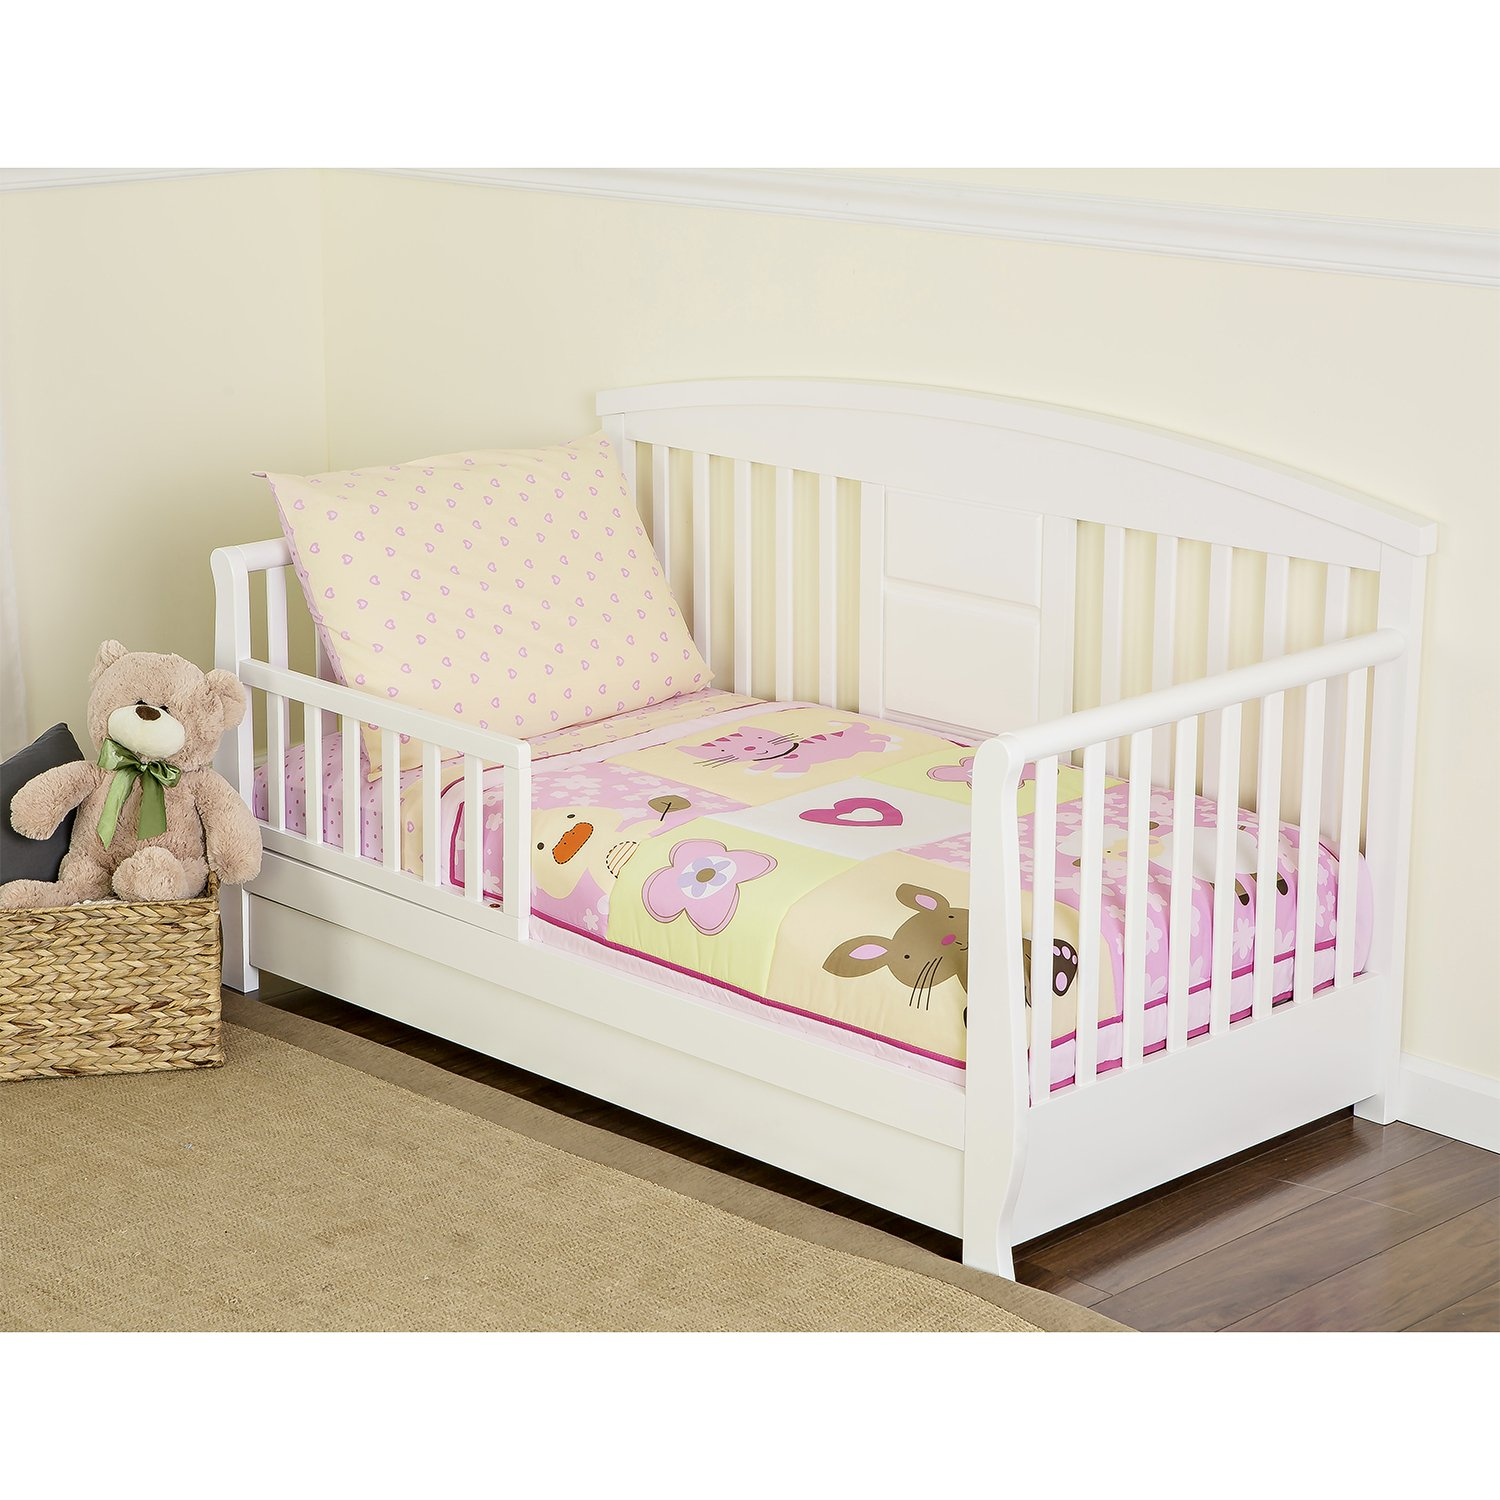 Dream On Me 4 Piece Toddler Beddingセット、Naptime Friends   B00PRX6GL2